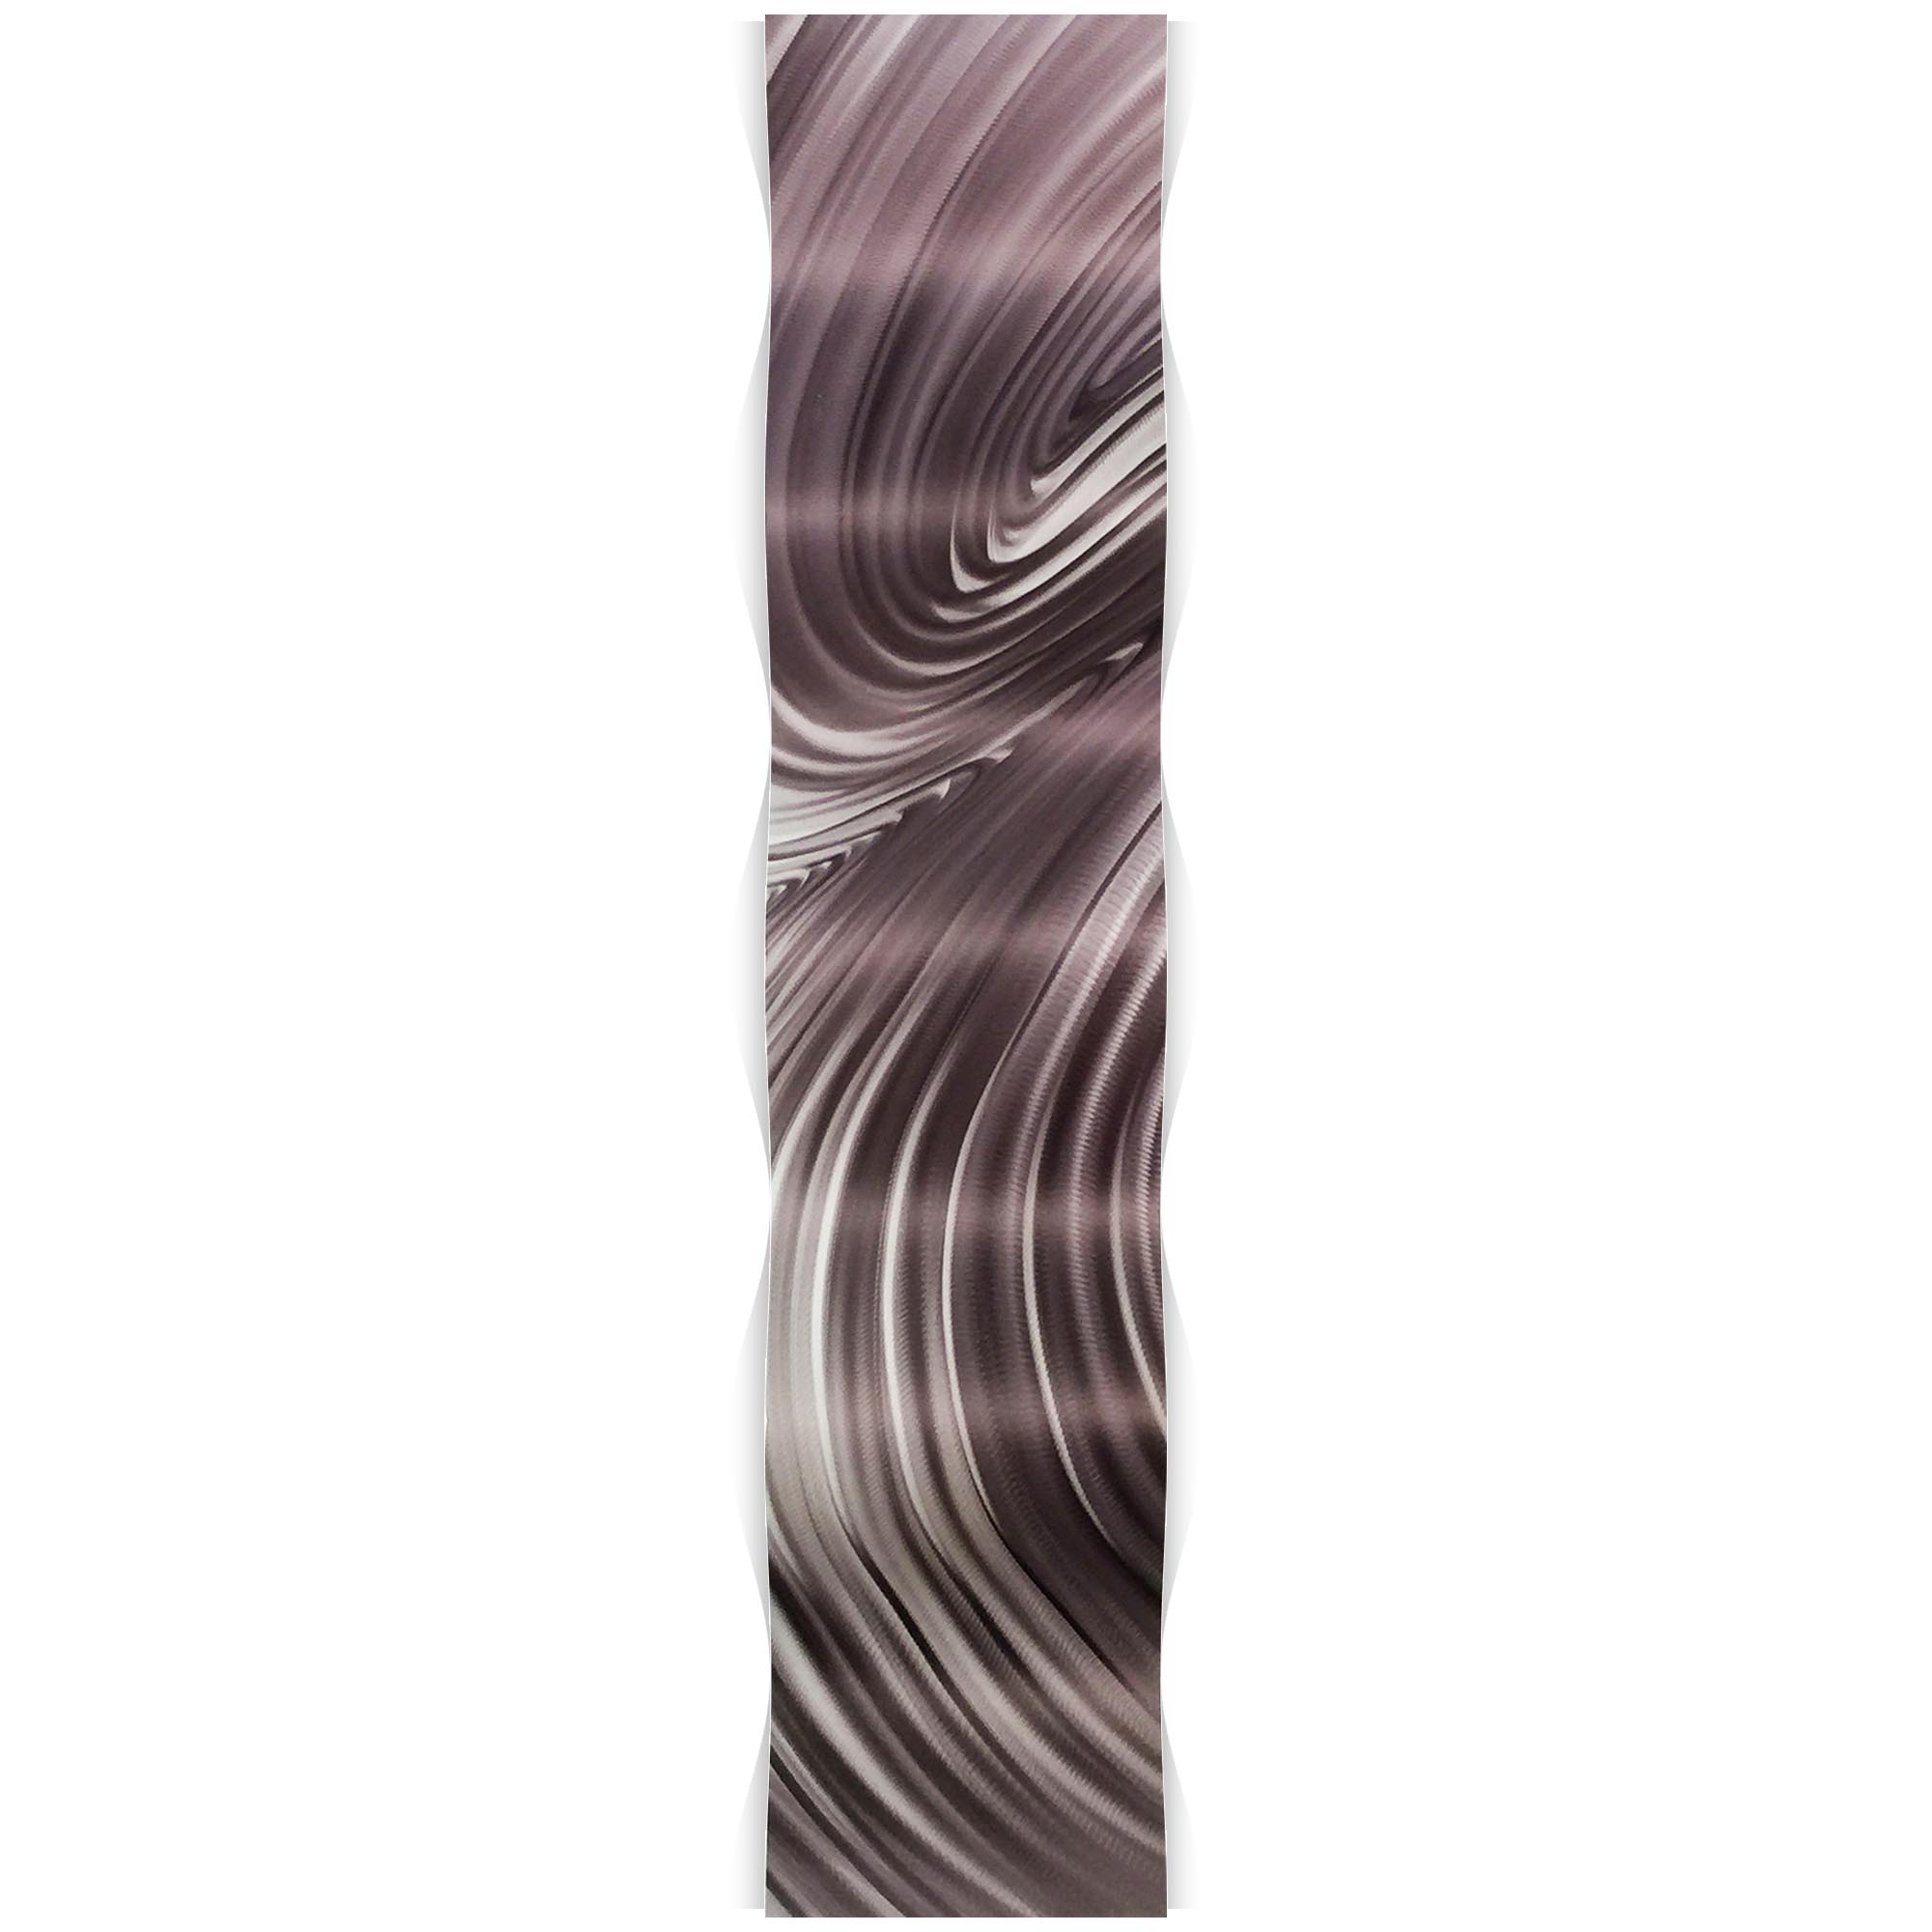 Fusion Wave 9.5x44in. Metal Eclectic Decor - Image 2